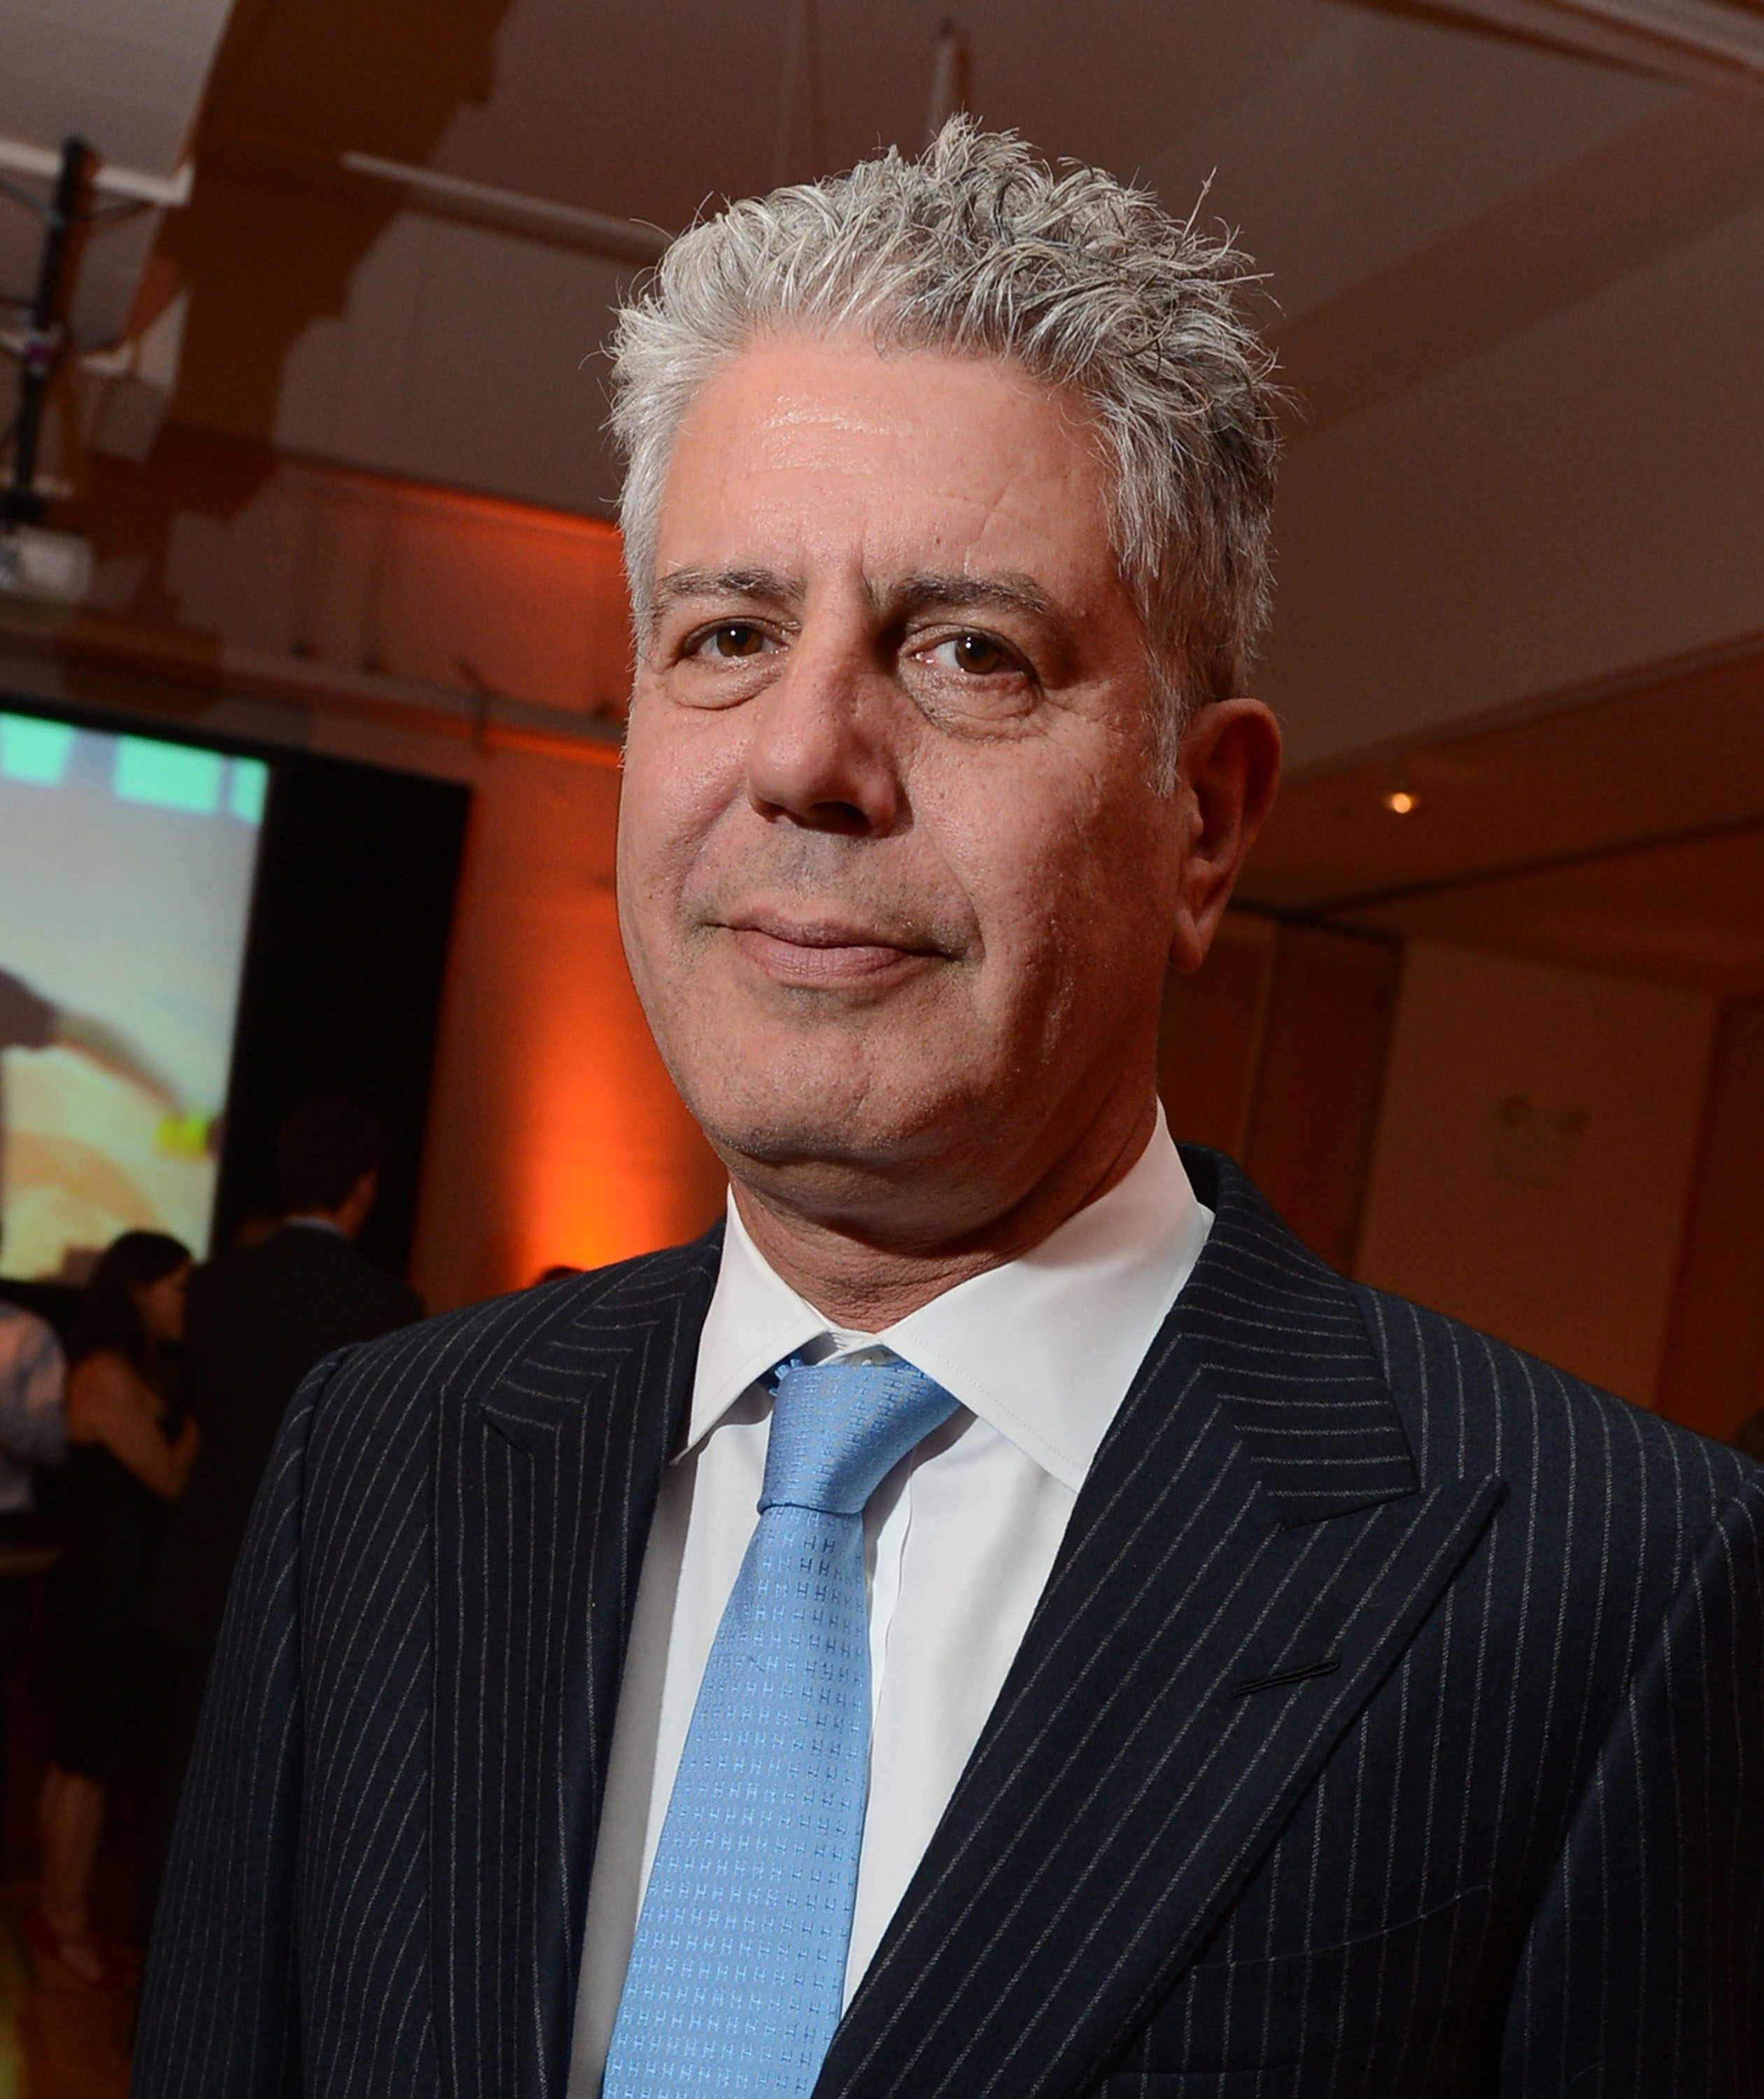 Anthony Bourdain, celebrated chef and TV personality, was full of blunt honesty at Shea's on Monday. (Getty Images)